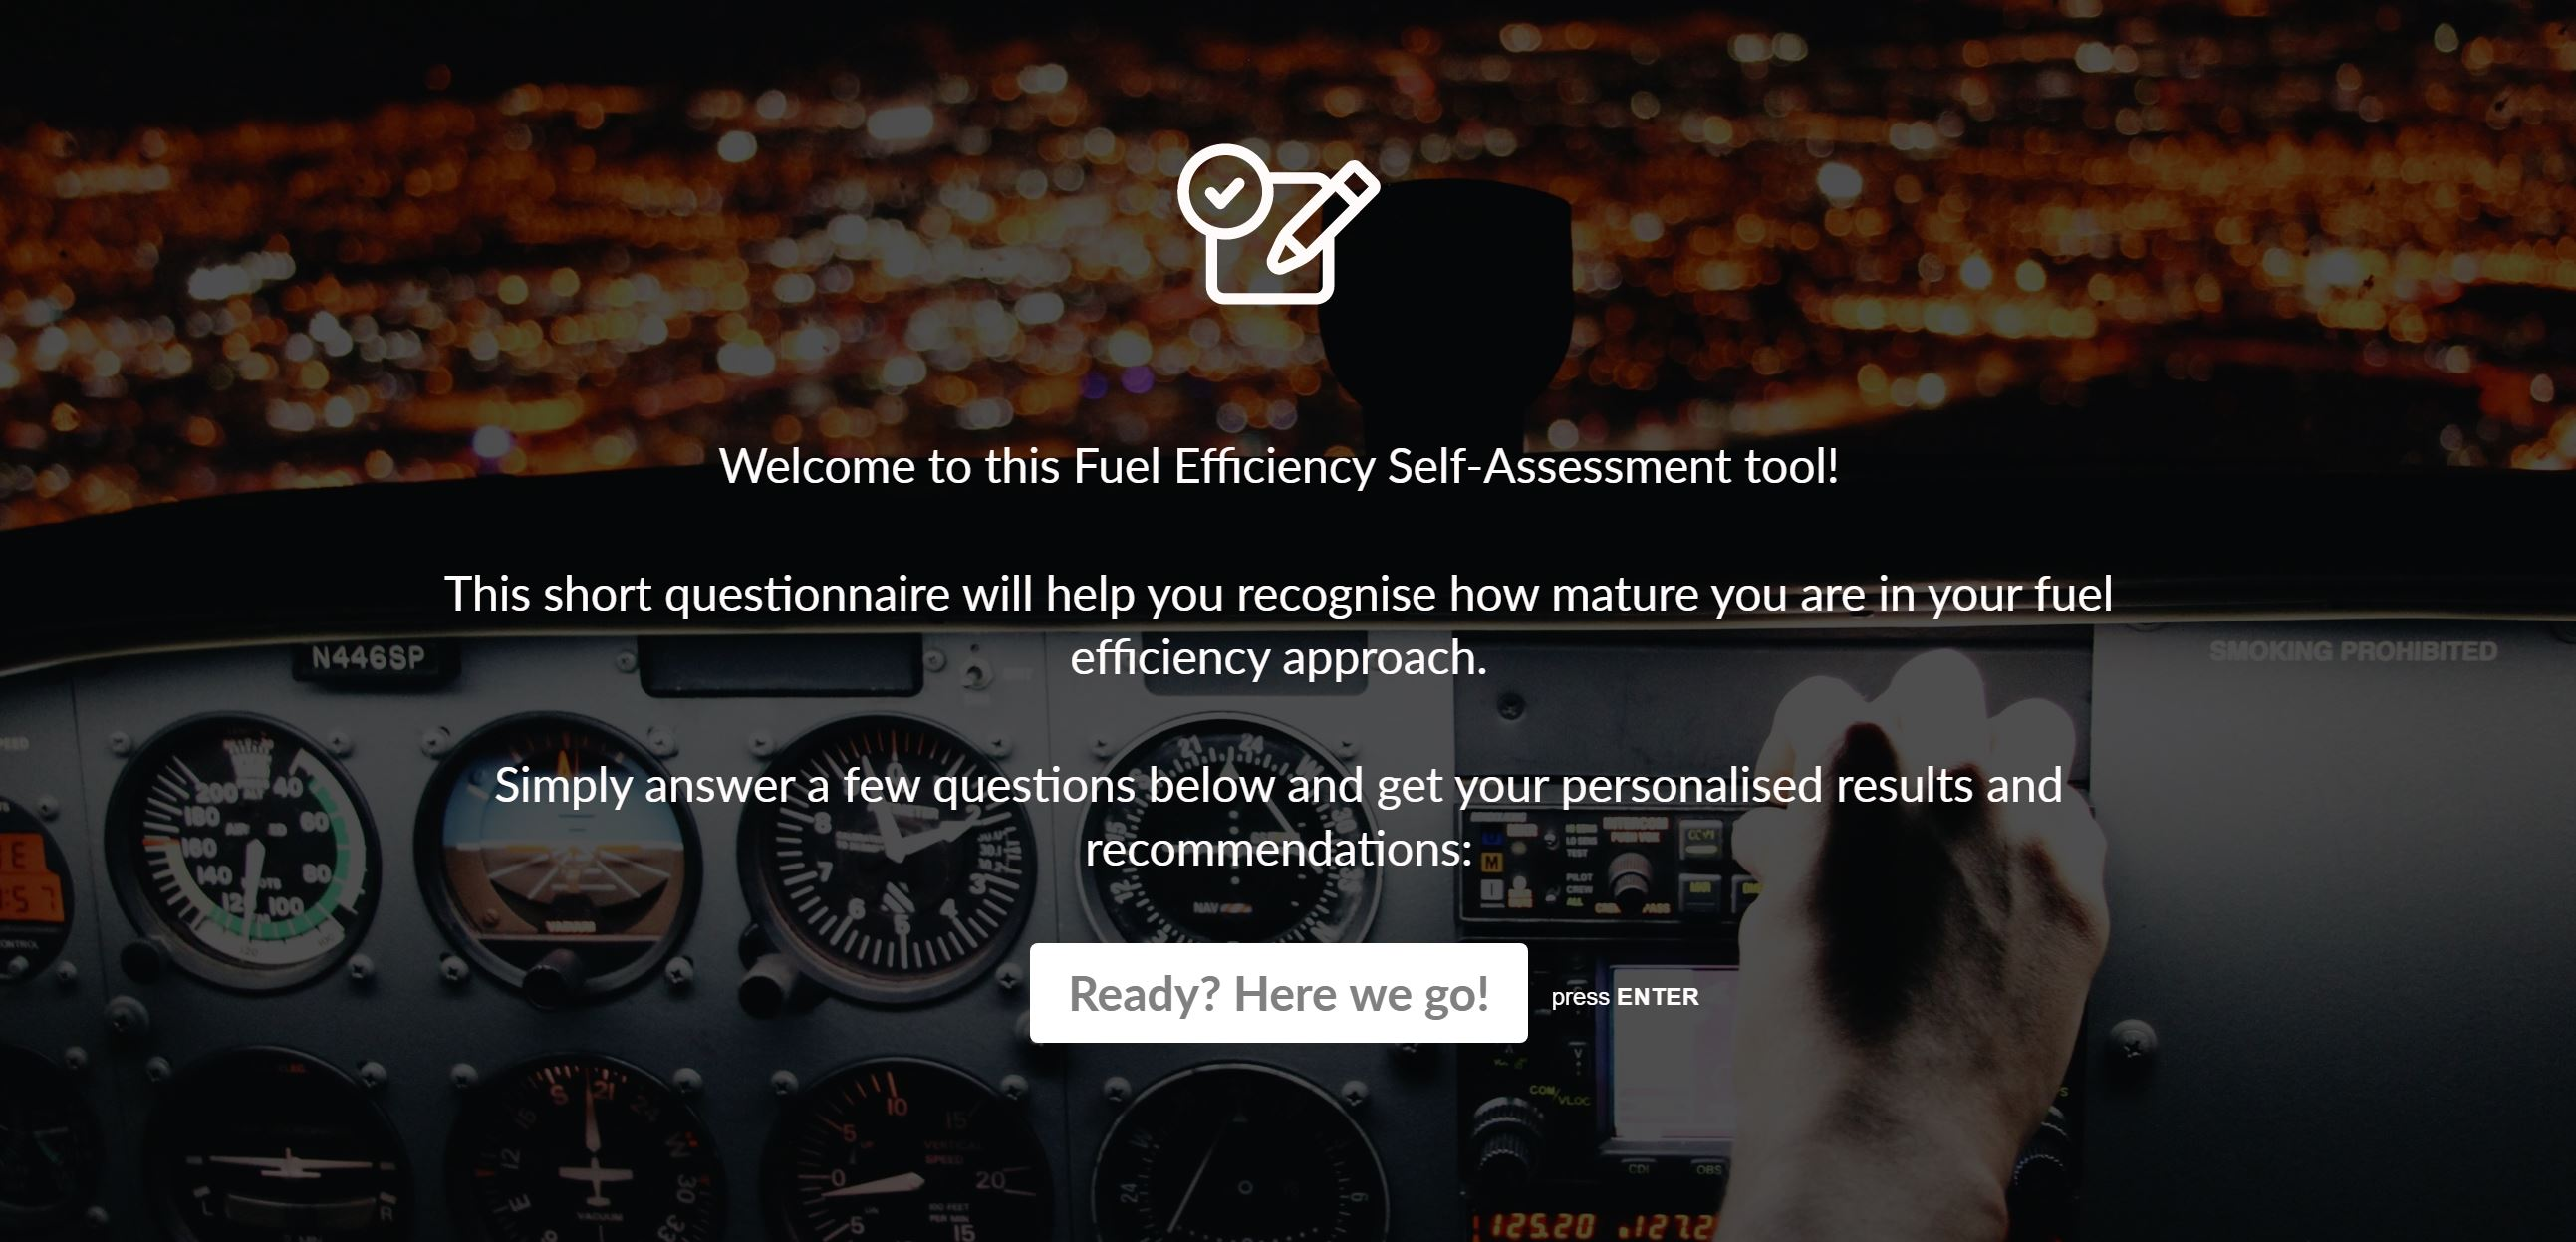 fuelefficiencyselfassessment